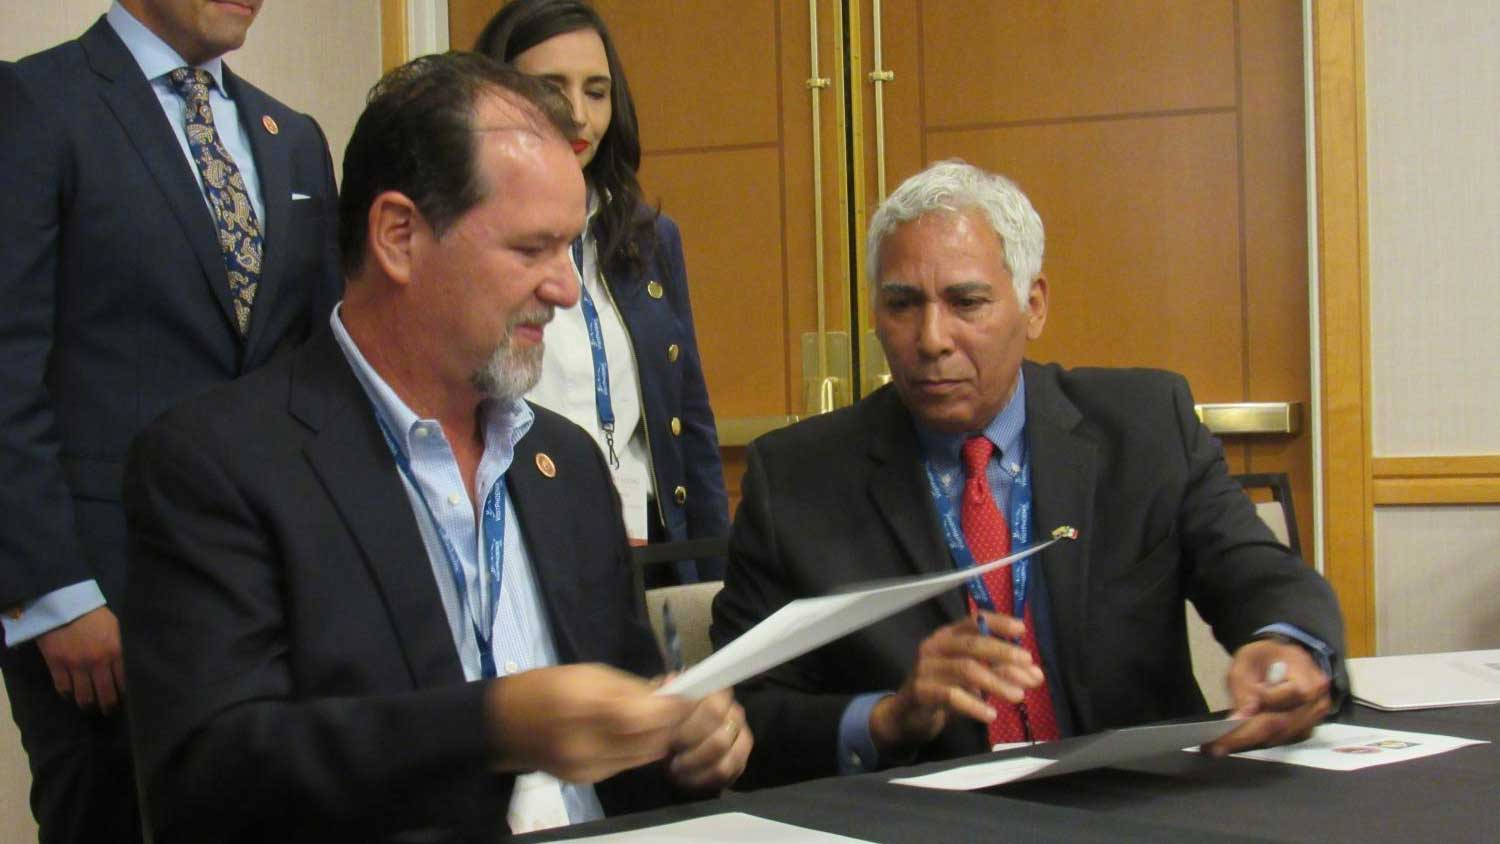 Sonora's Luis Gonzalez (left) hands a signed copy of a memorandum of understanding to Arizona's Matthew Earl Jones on the first day of meetings for the Arizona-Mexico Commission.